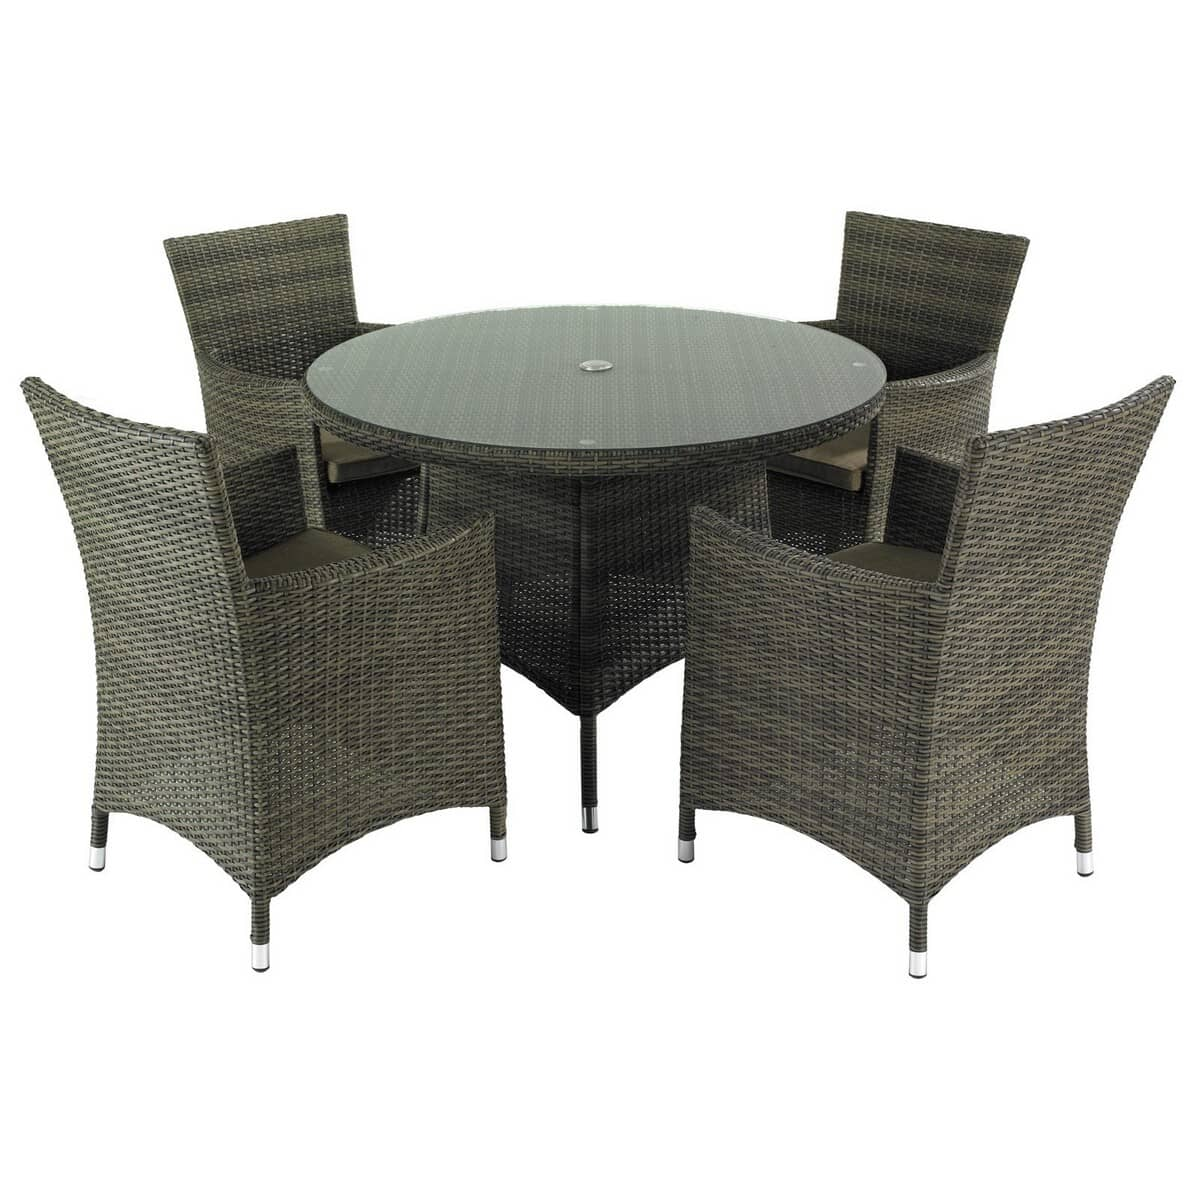 Hartman Bentley 4 Seat Dining Set Hbenset02 Garden